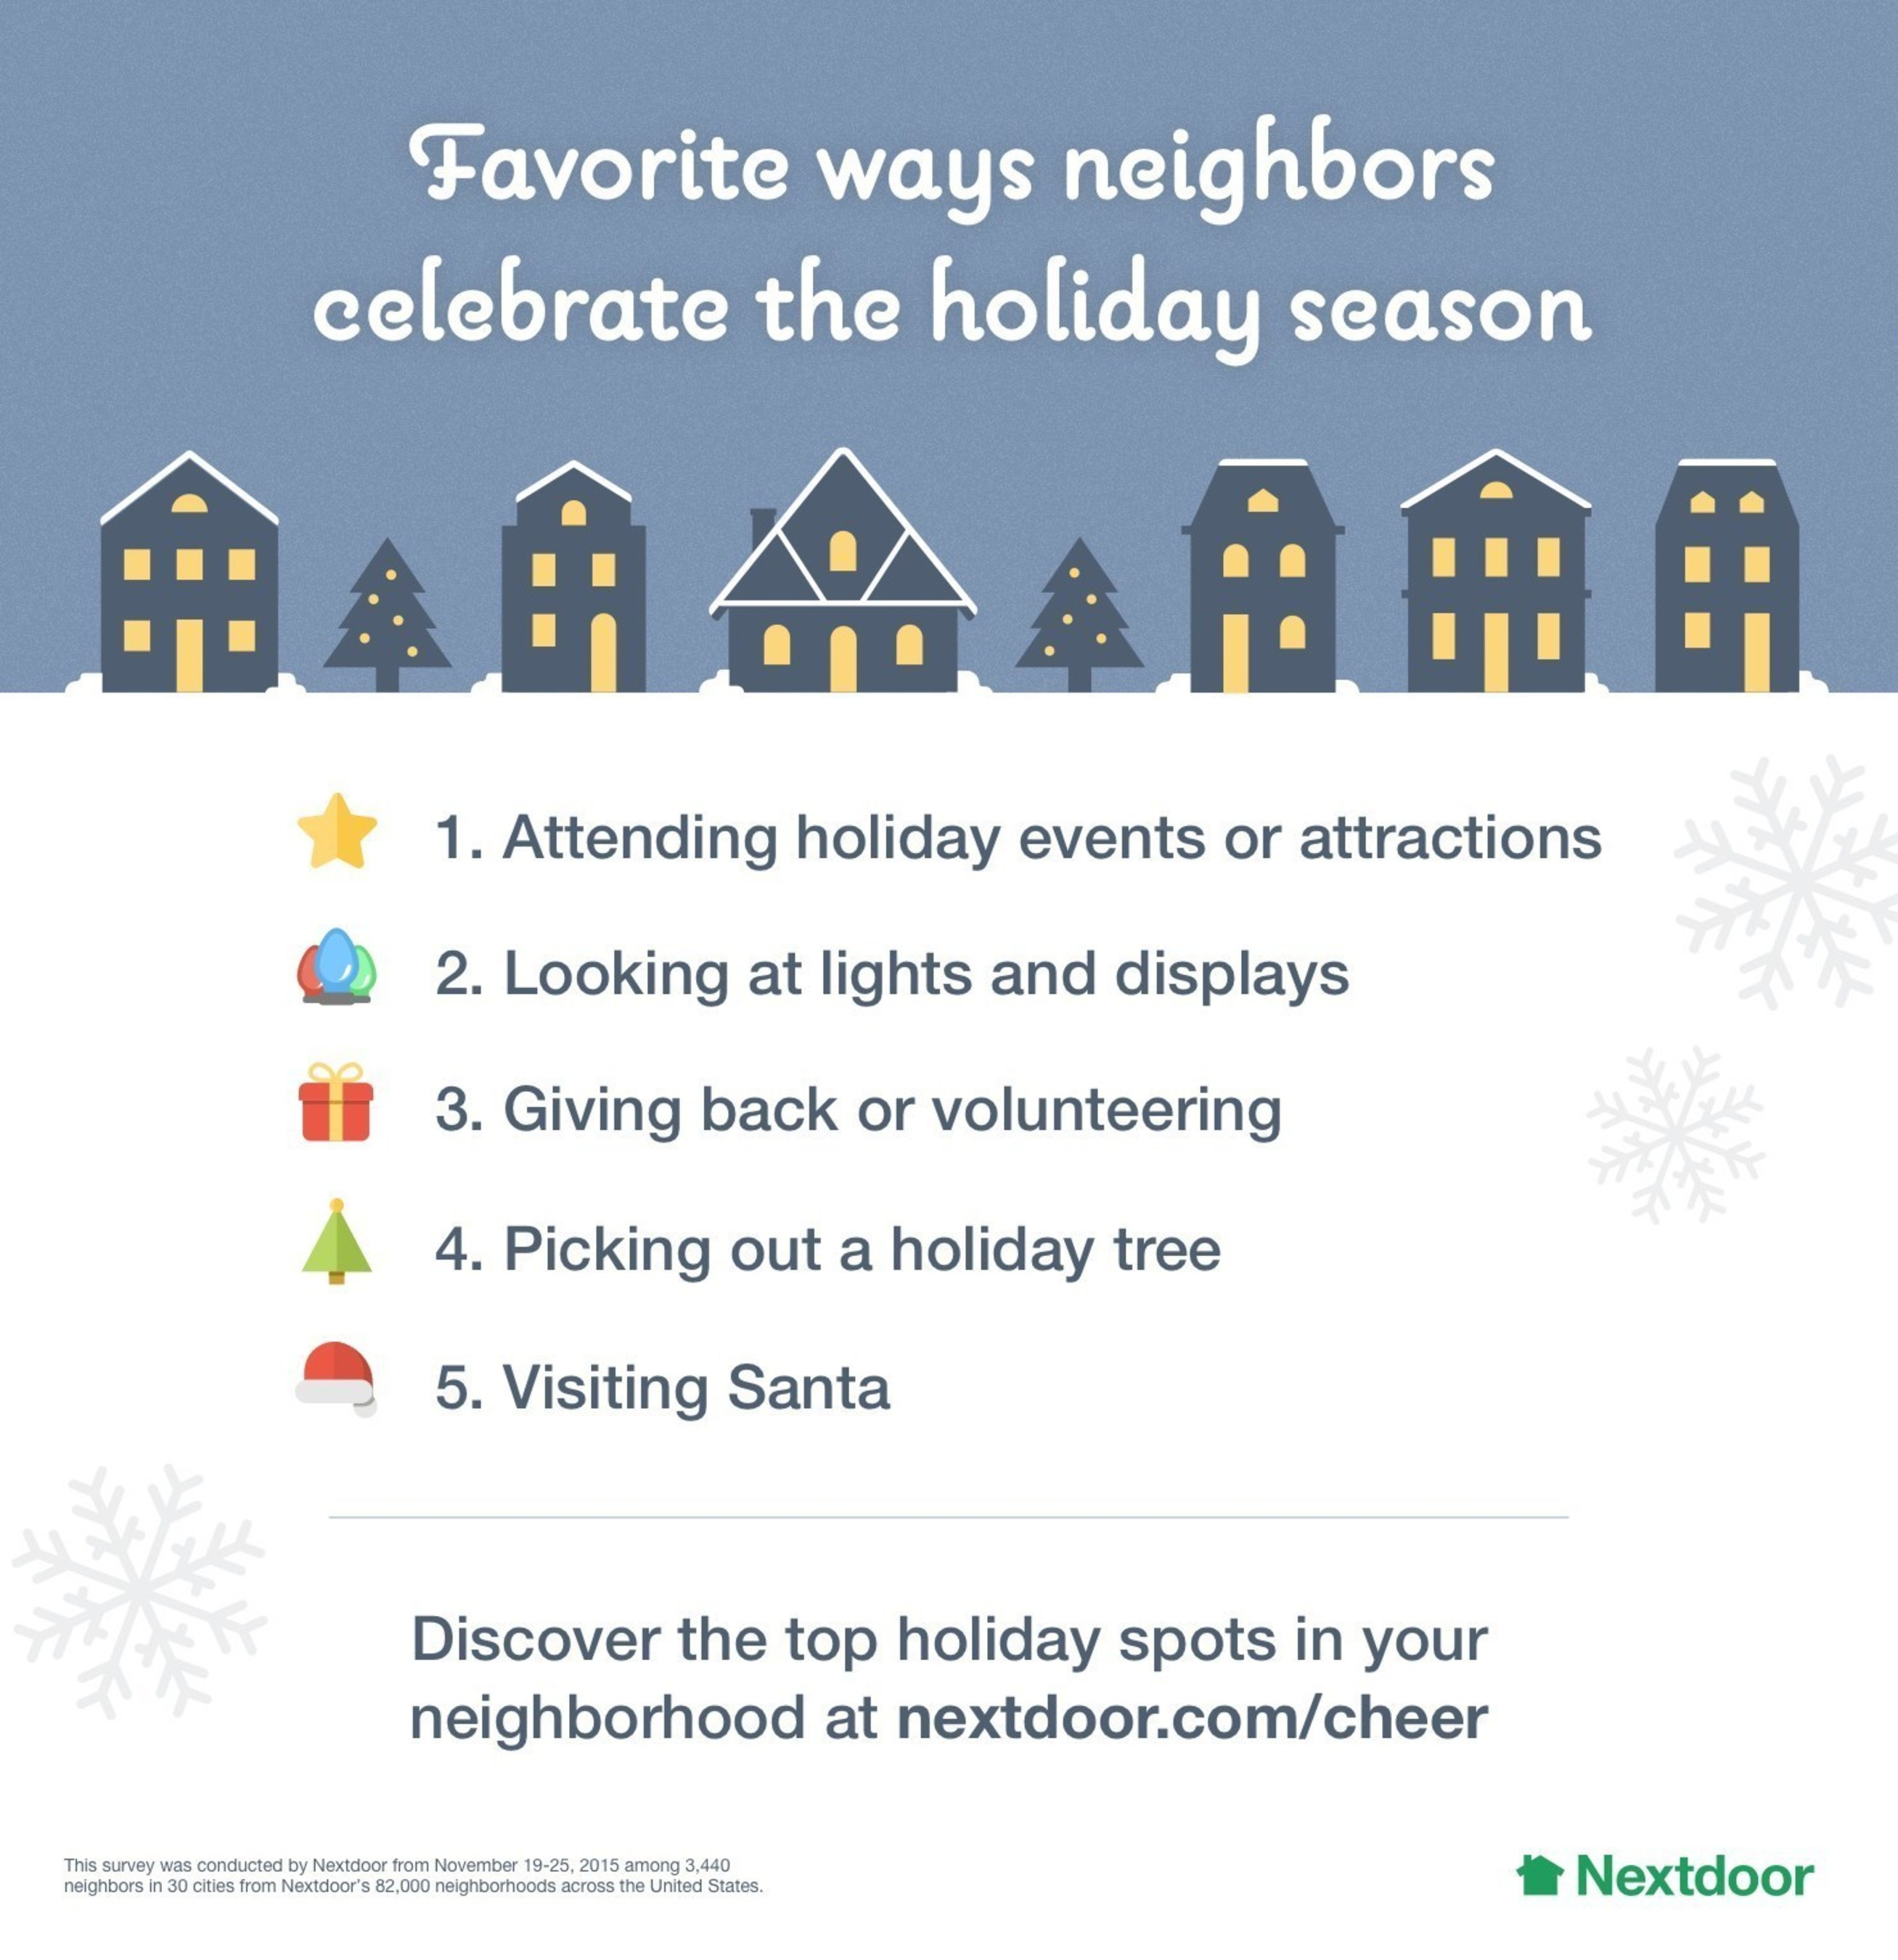 Infographic from Nextdoor with the top five most popular ways neighbors celebrate the holidays.